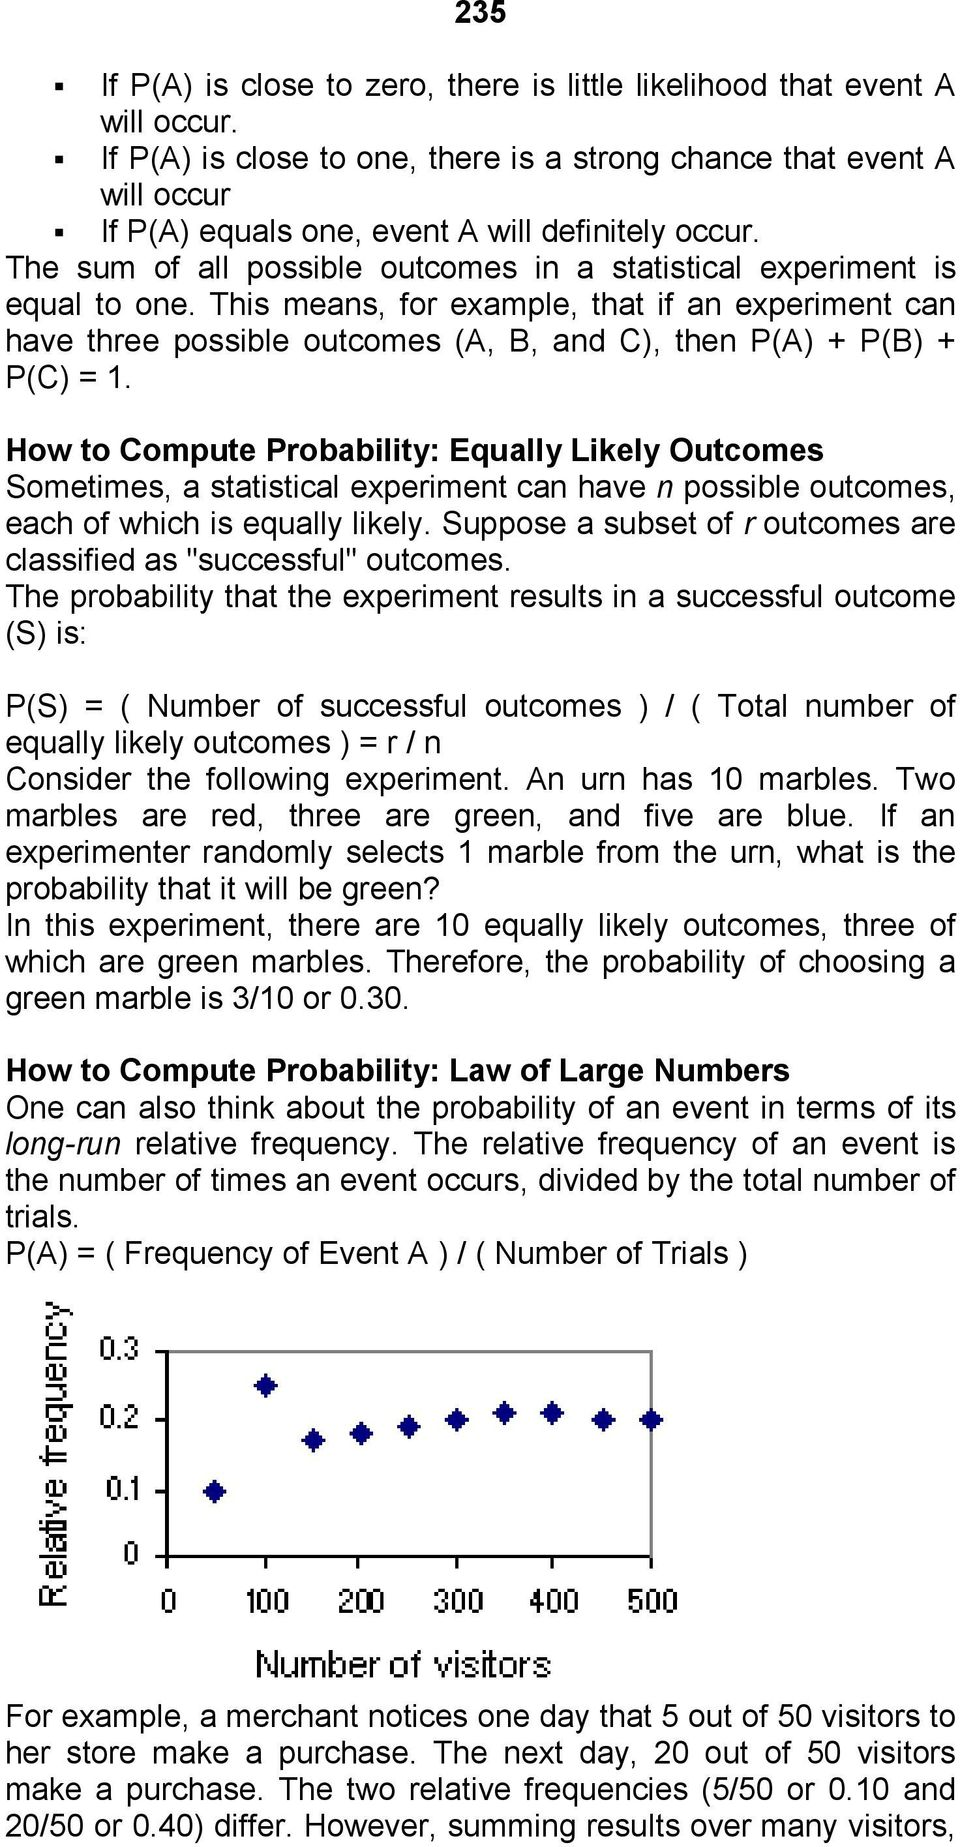 The sum of all possible outcomes in a statistical experiment is equal to one.